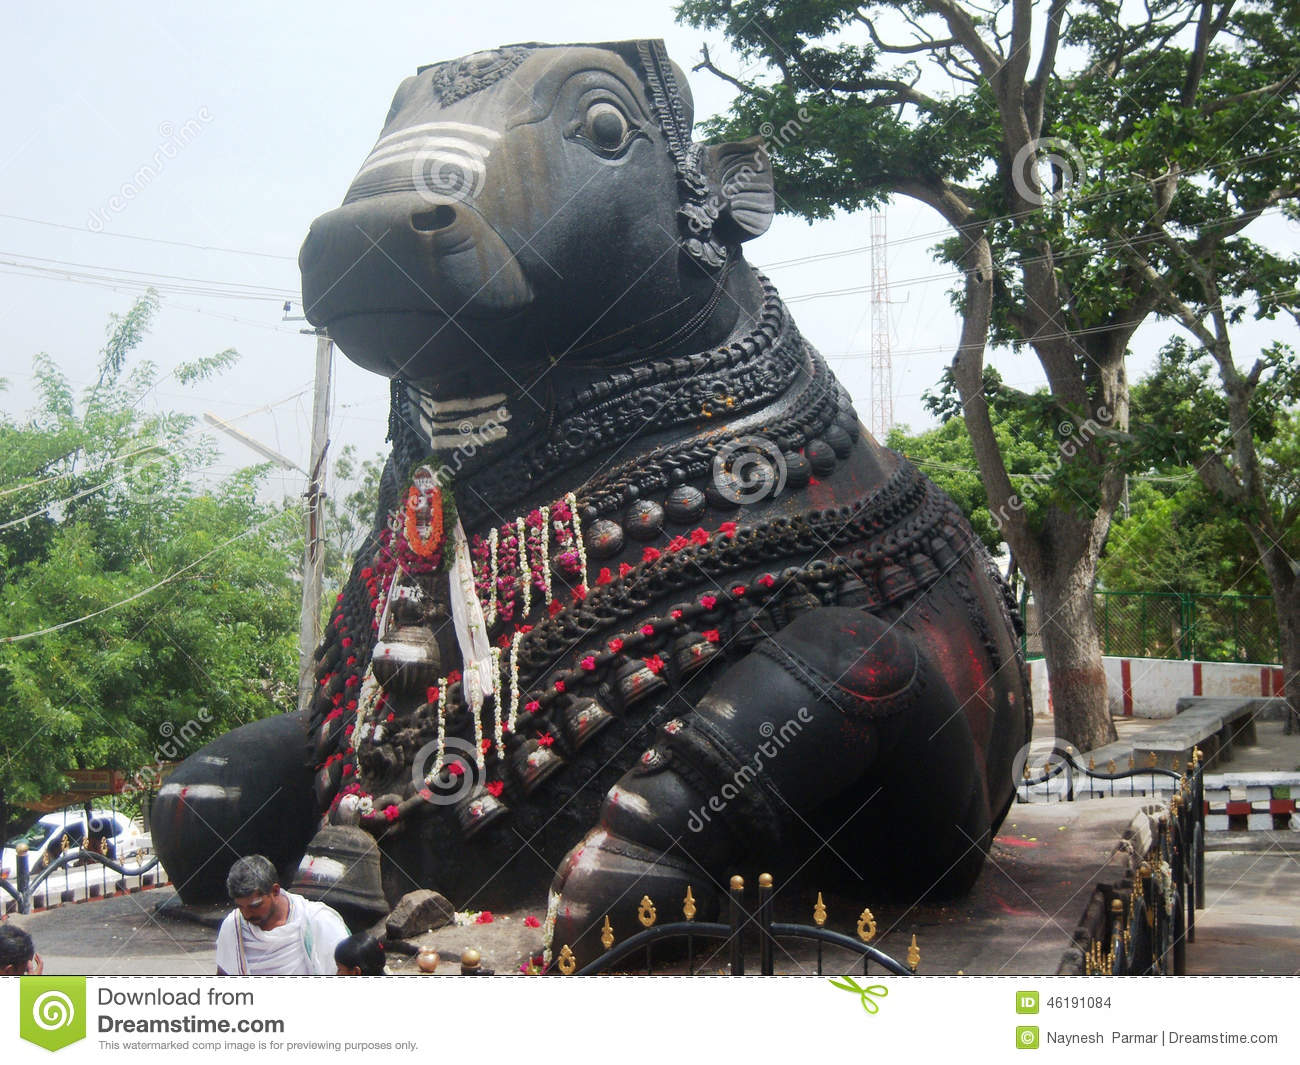 Biggest temple in bangalore dating 7